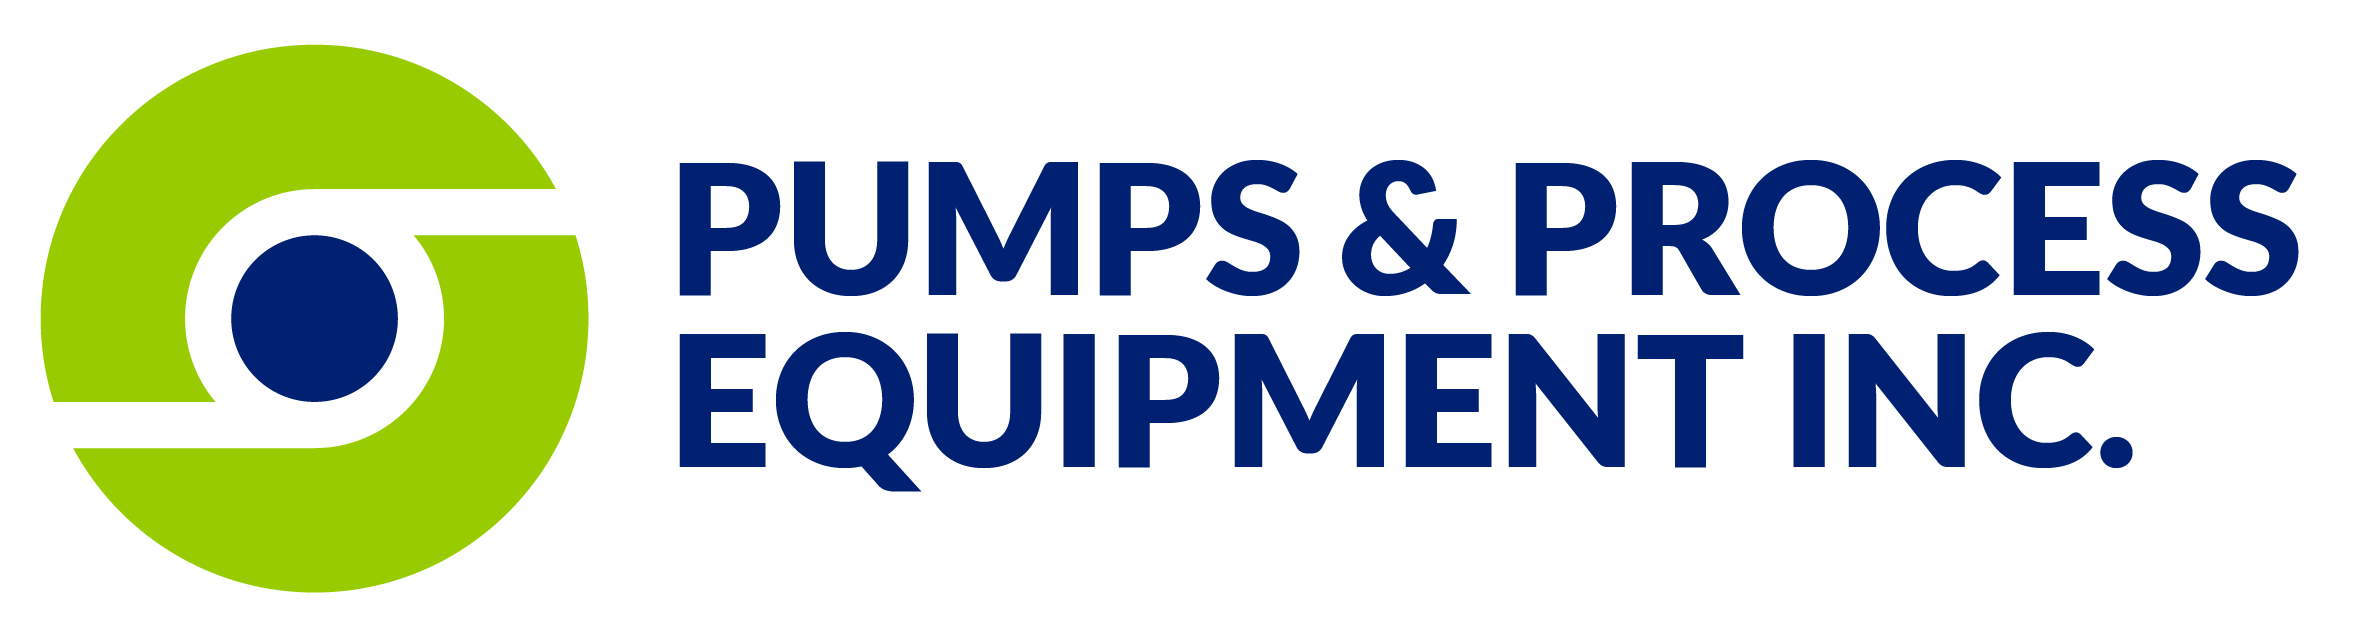 Pumps & Process Equipment Inc